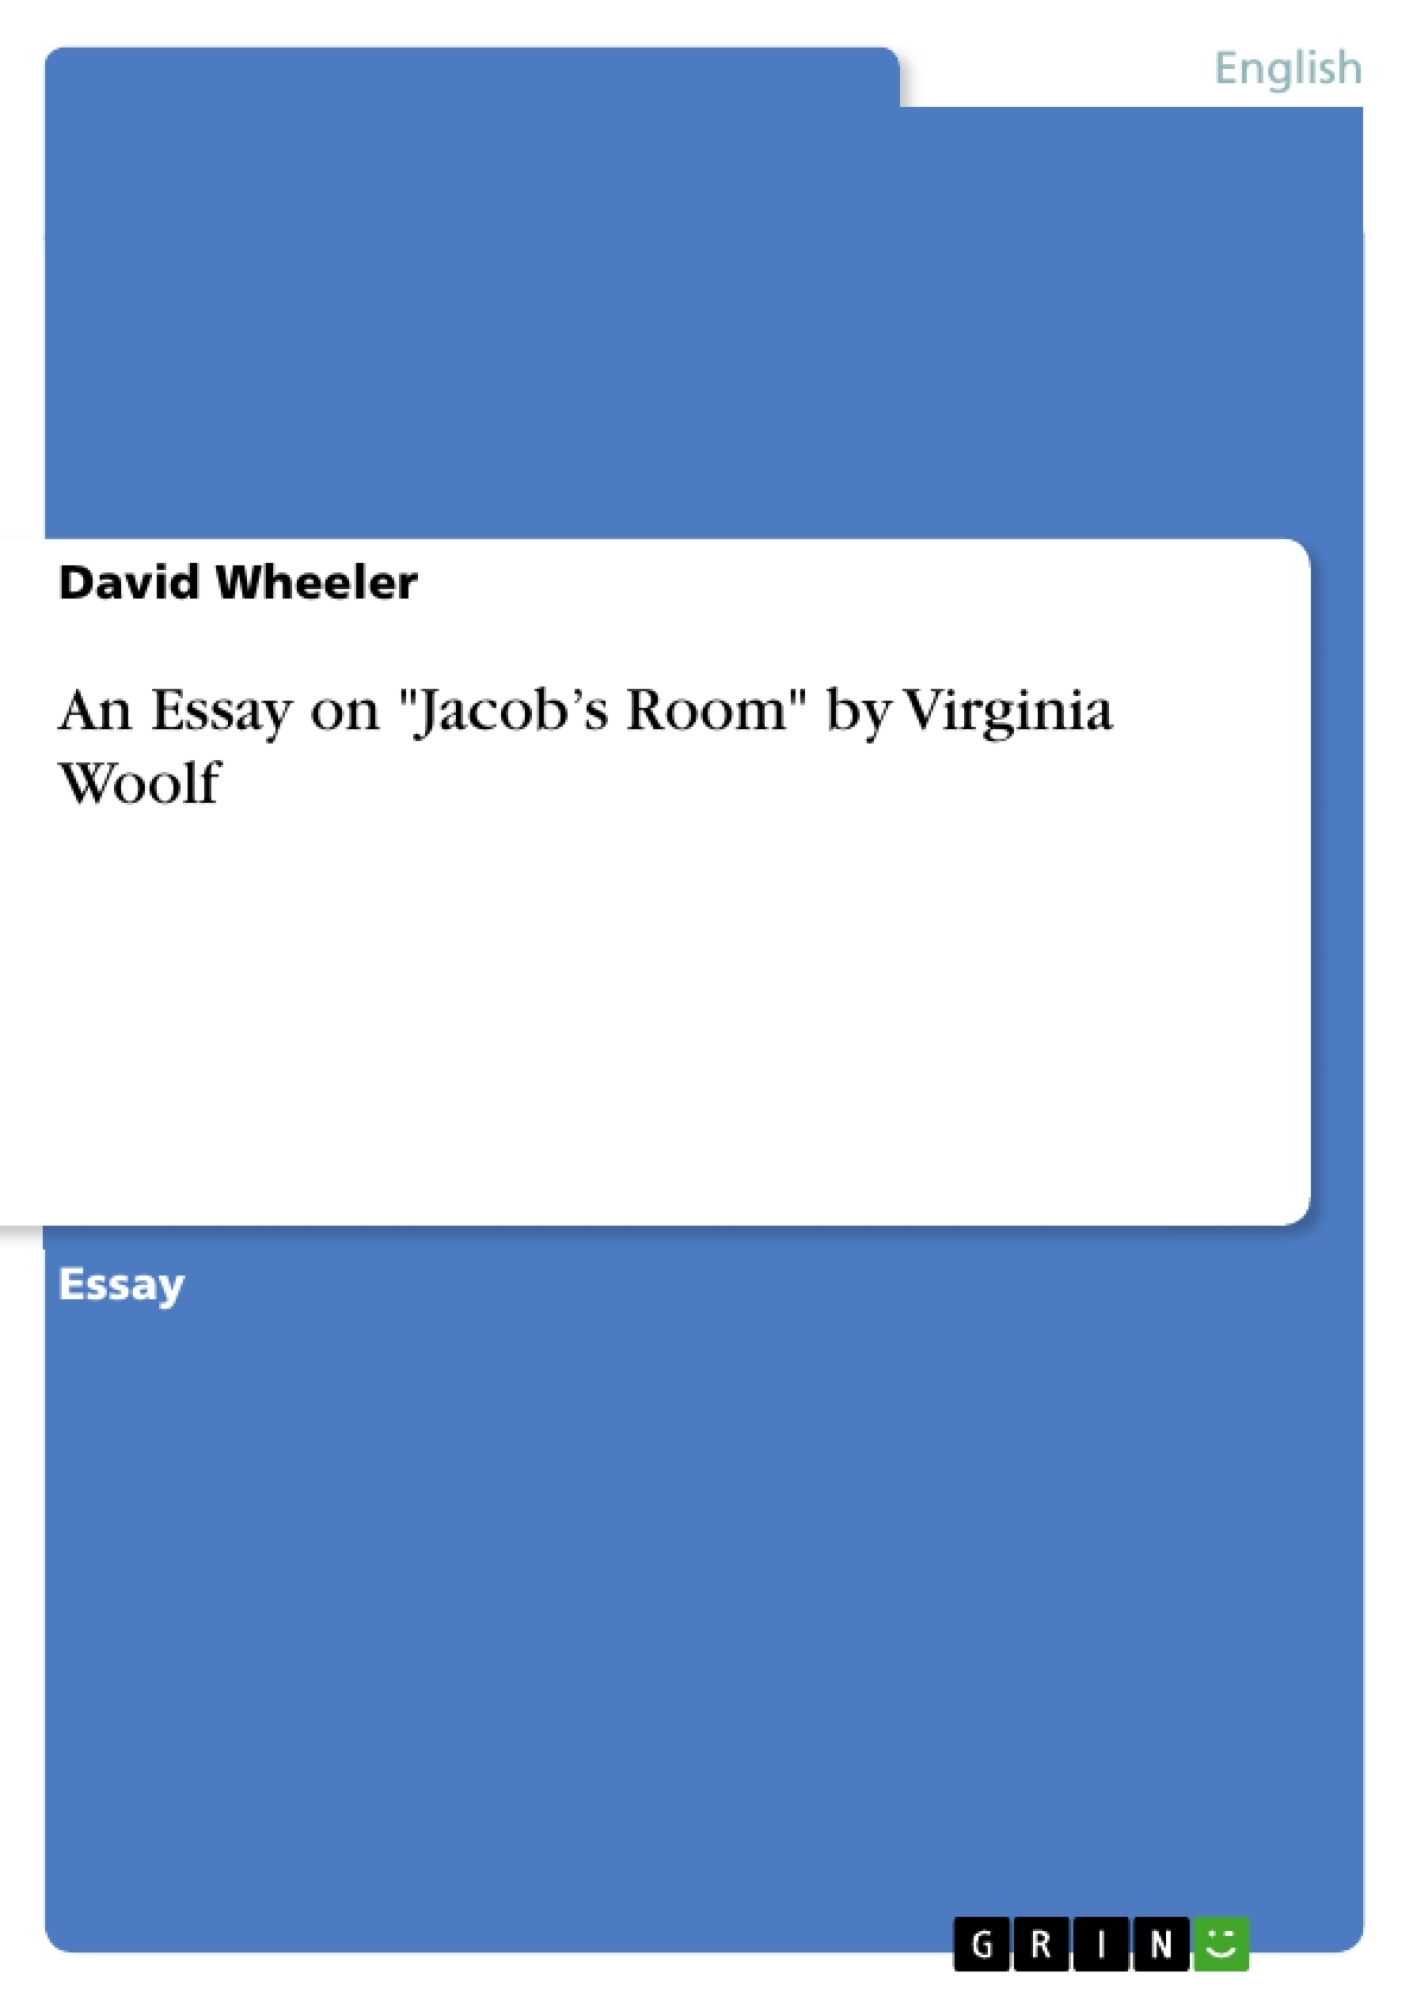 an essay on jacob s room by virginia woolf publish your  upload your own papers earn money and win an iphone x